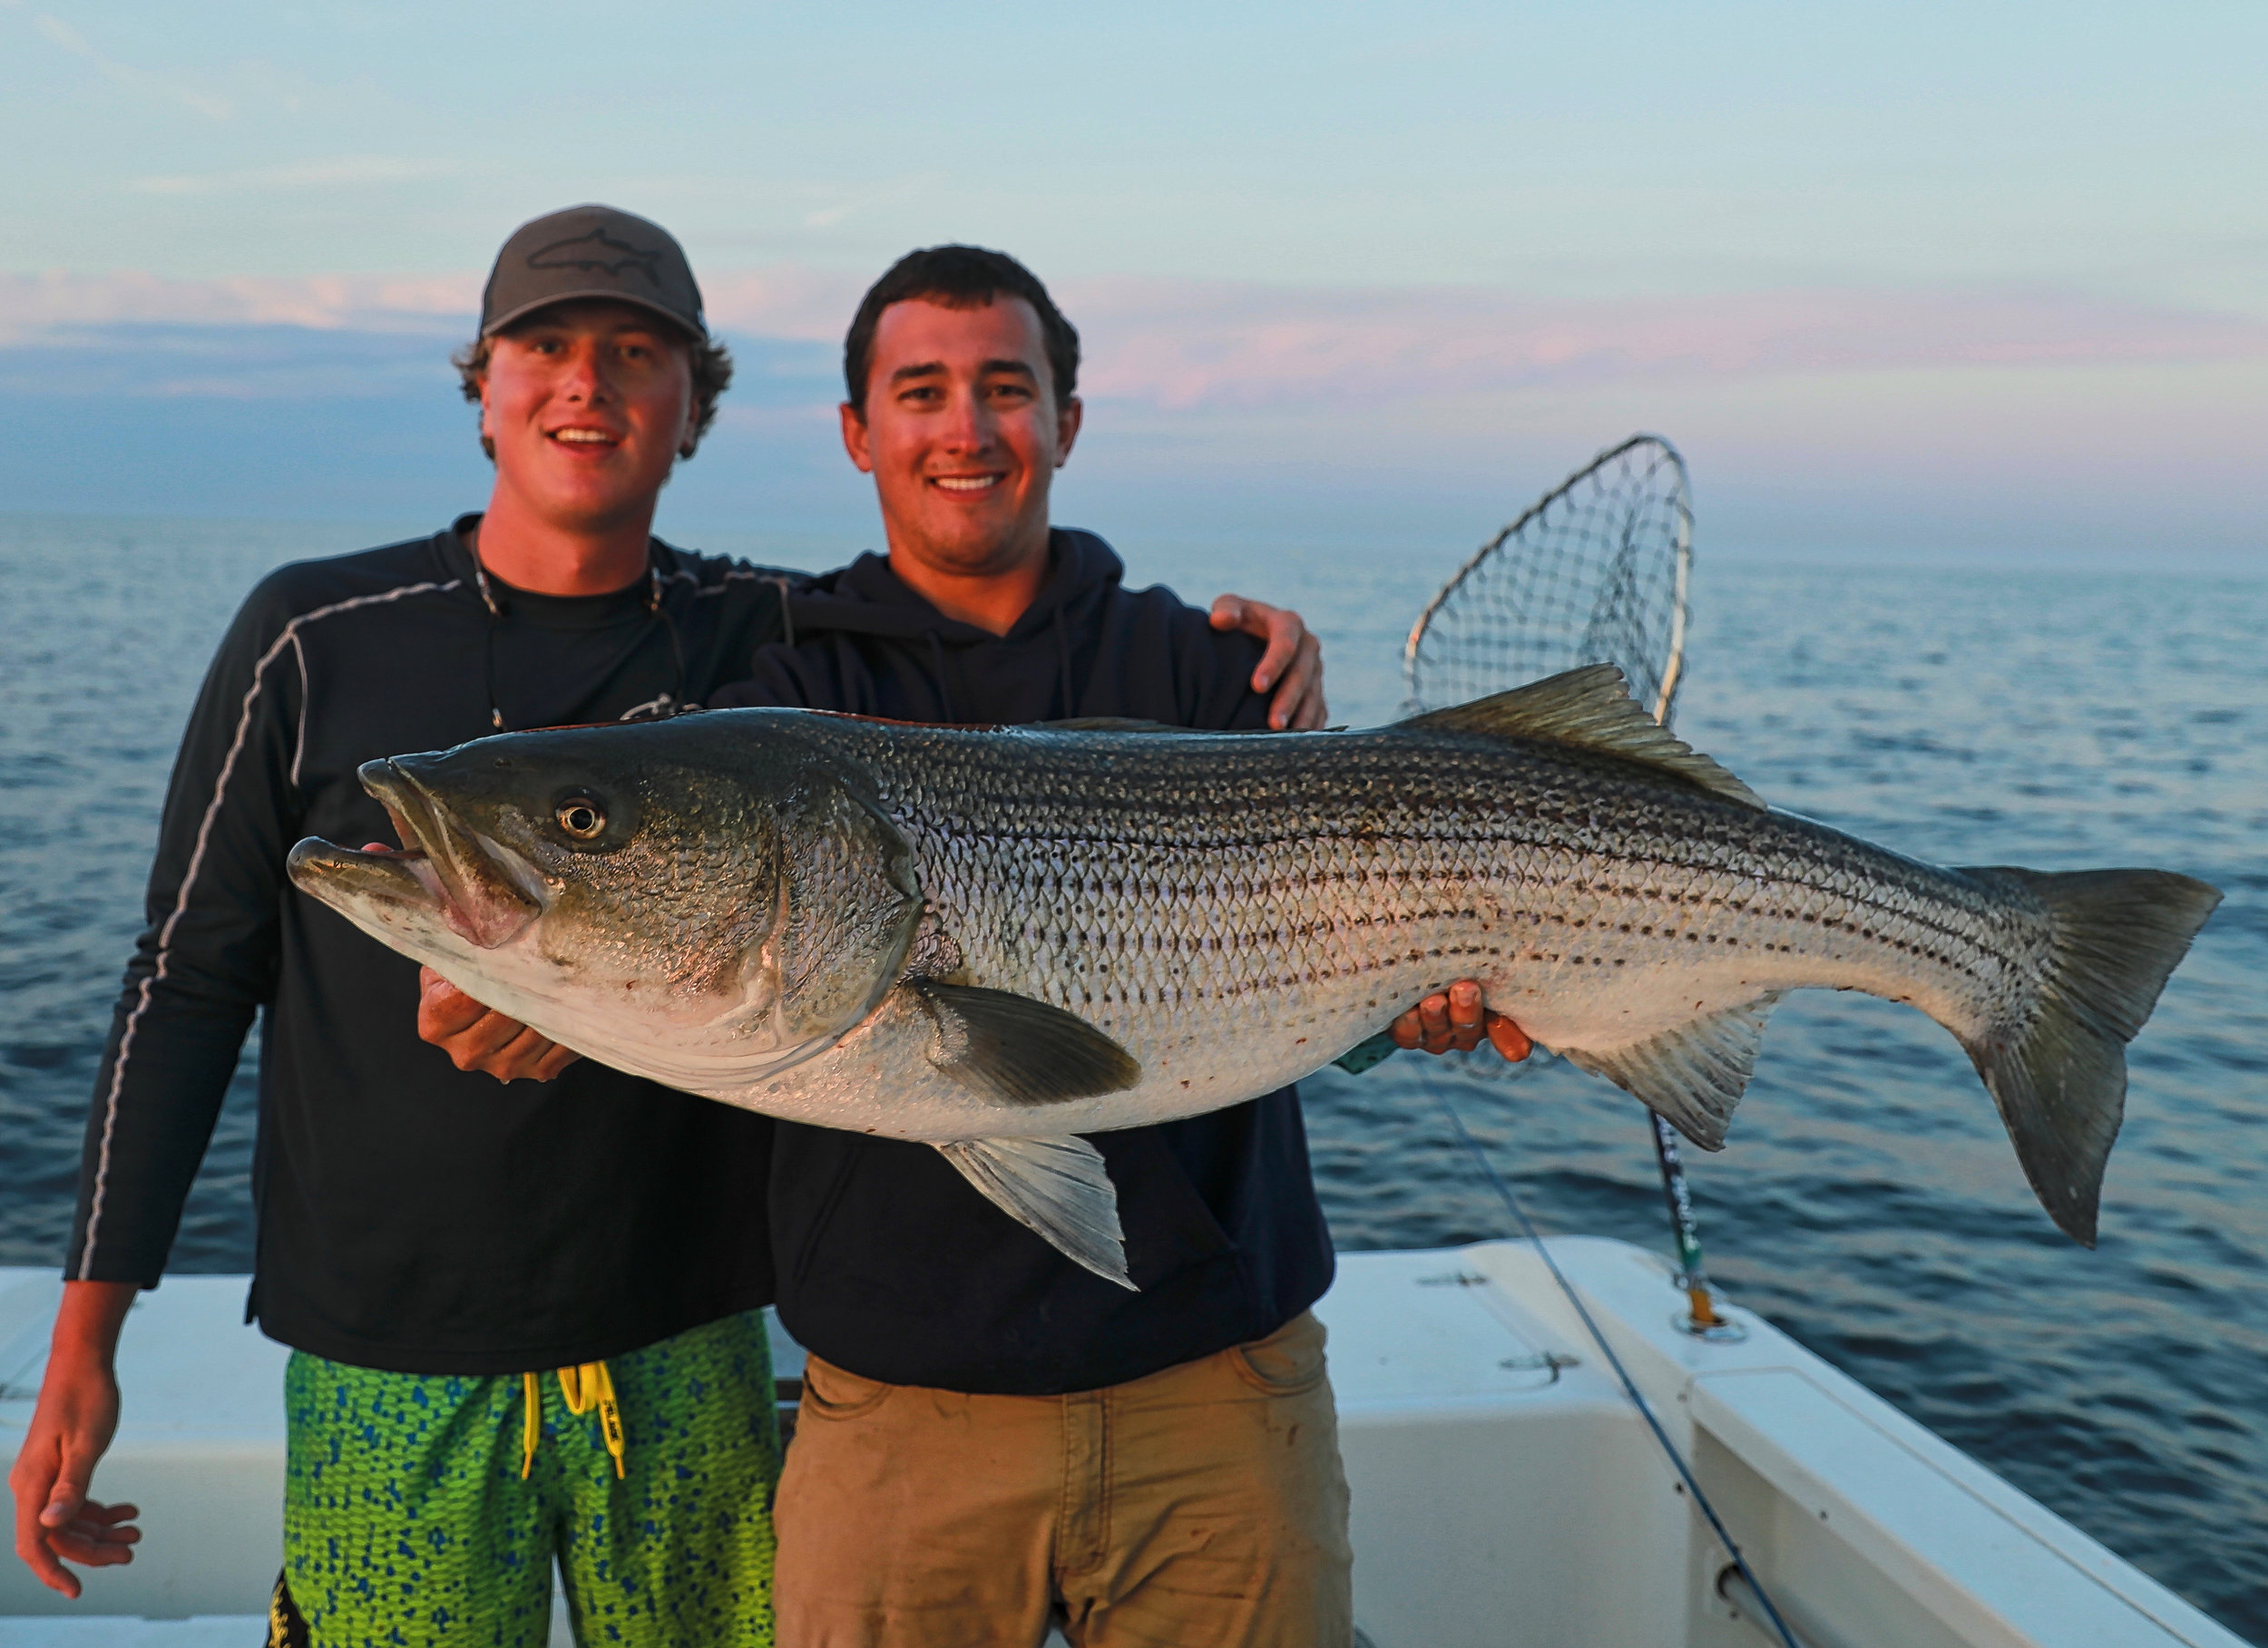 Foster Eymer, Lawson Lindsey and a gigantic striped bass